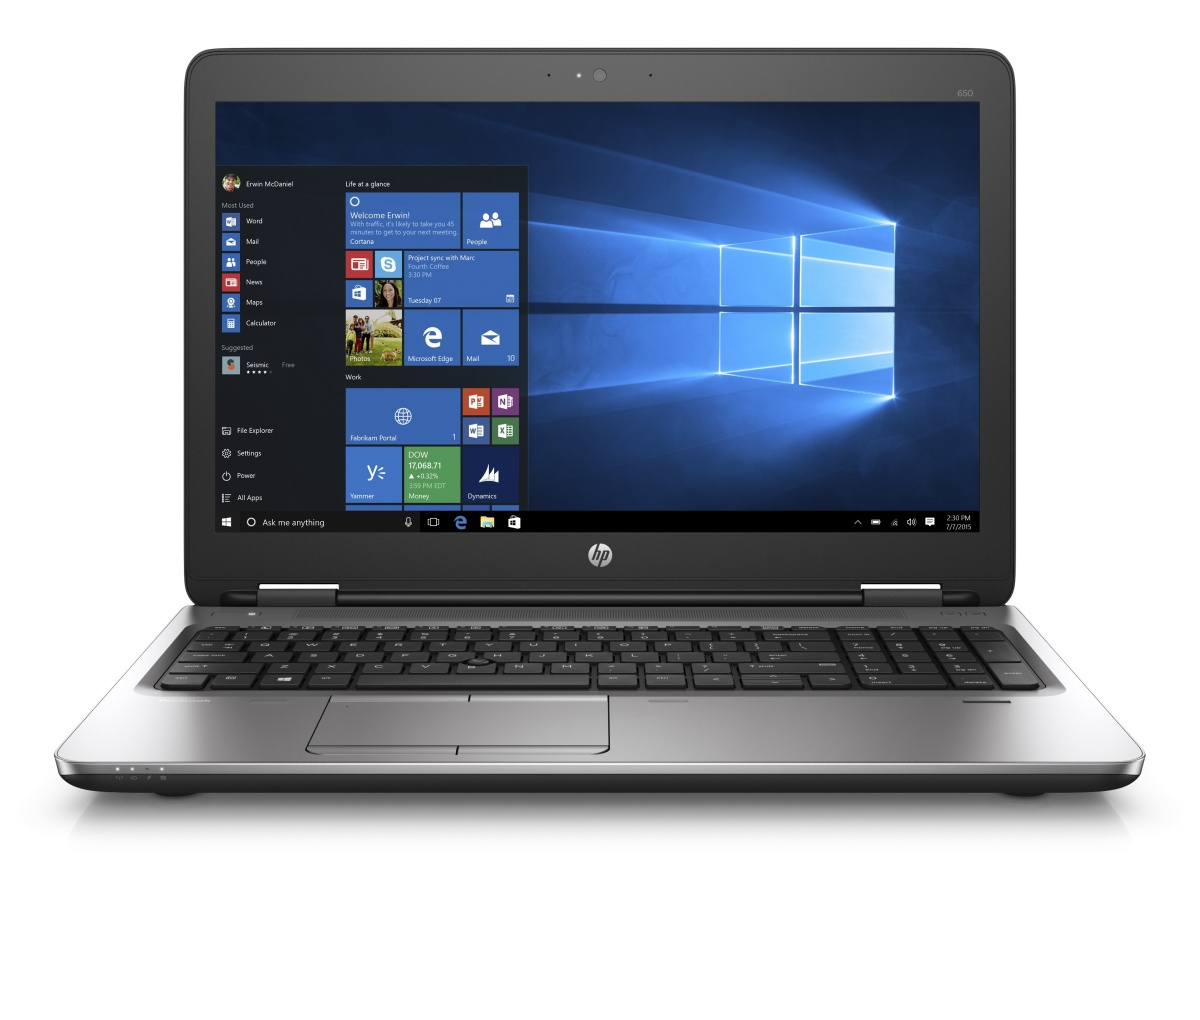 HP ProBook 650 G2 i5-6200U/ 4GB / 500 GB / 15,6'' HD / backlit keyb / Office H&B / Win 10 Pro + Win 7 Pro